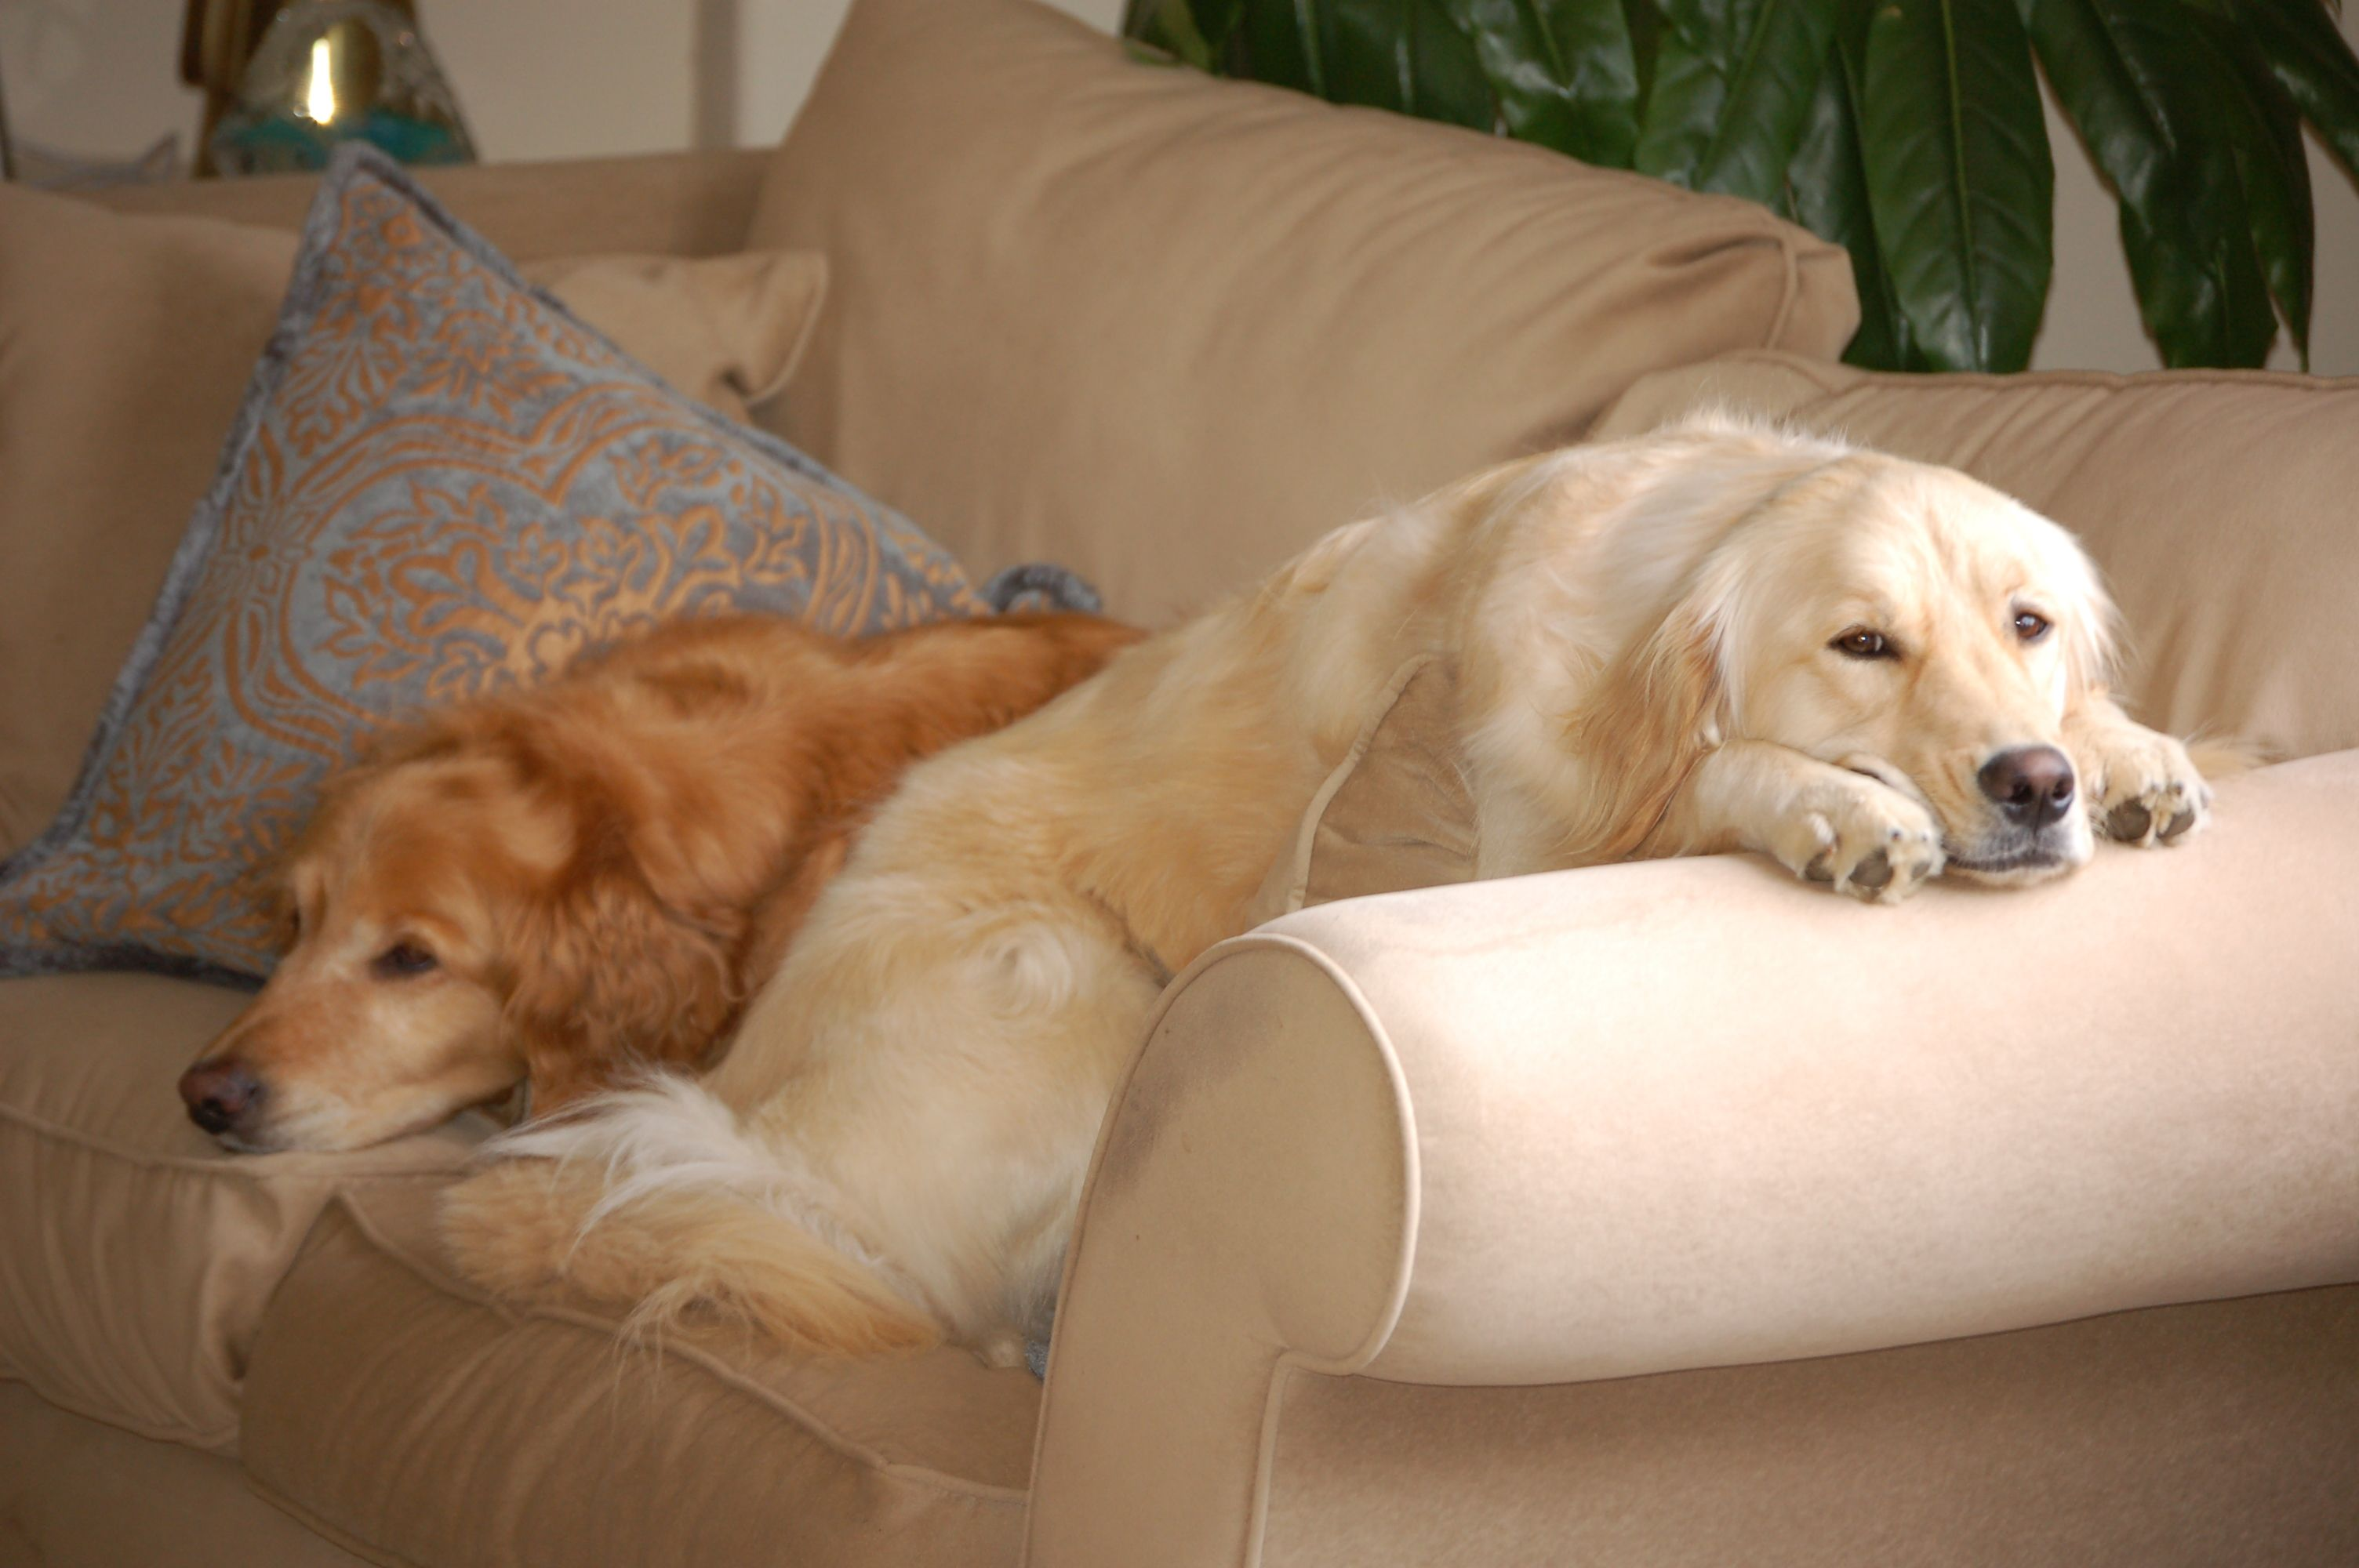 Scoobs and Kayla lounging